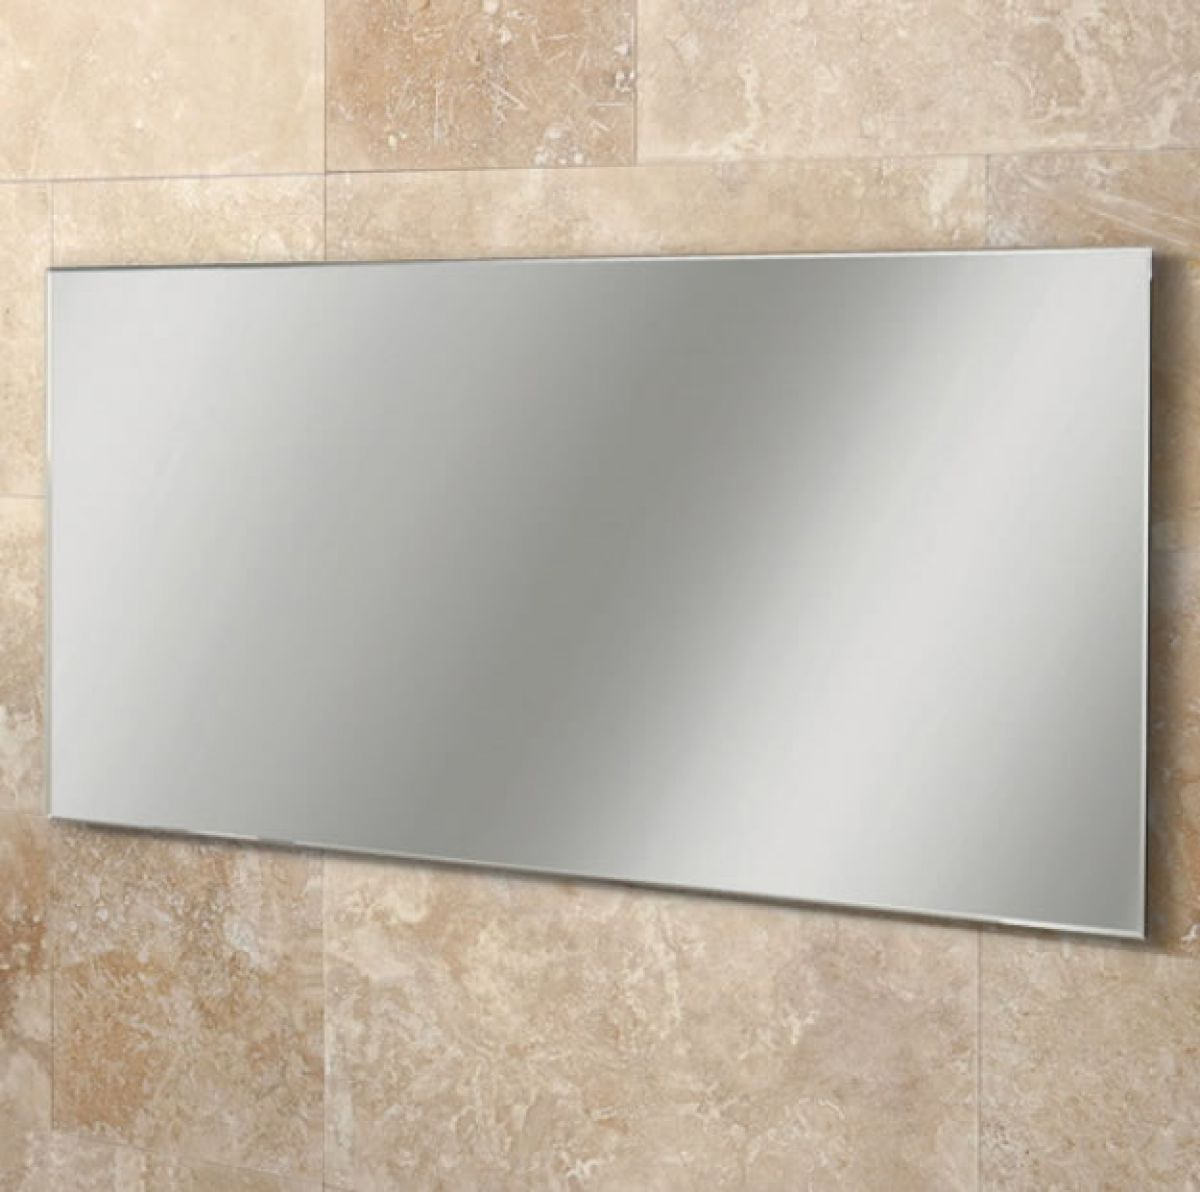 26 Original Large Bathroom Mirrors Uk | eyagci.com